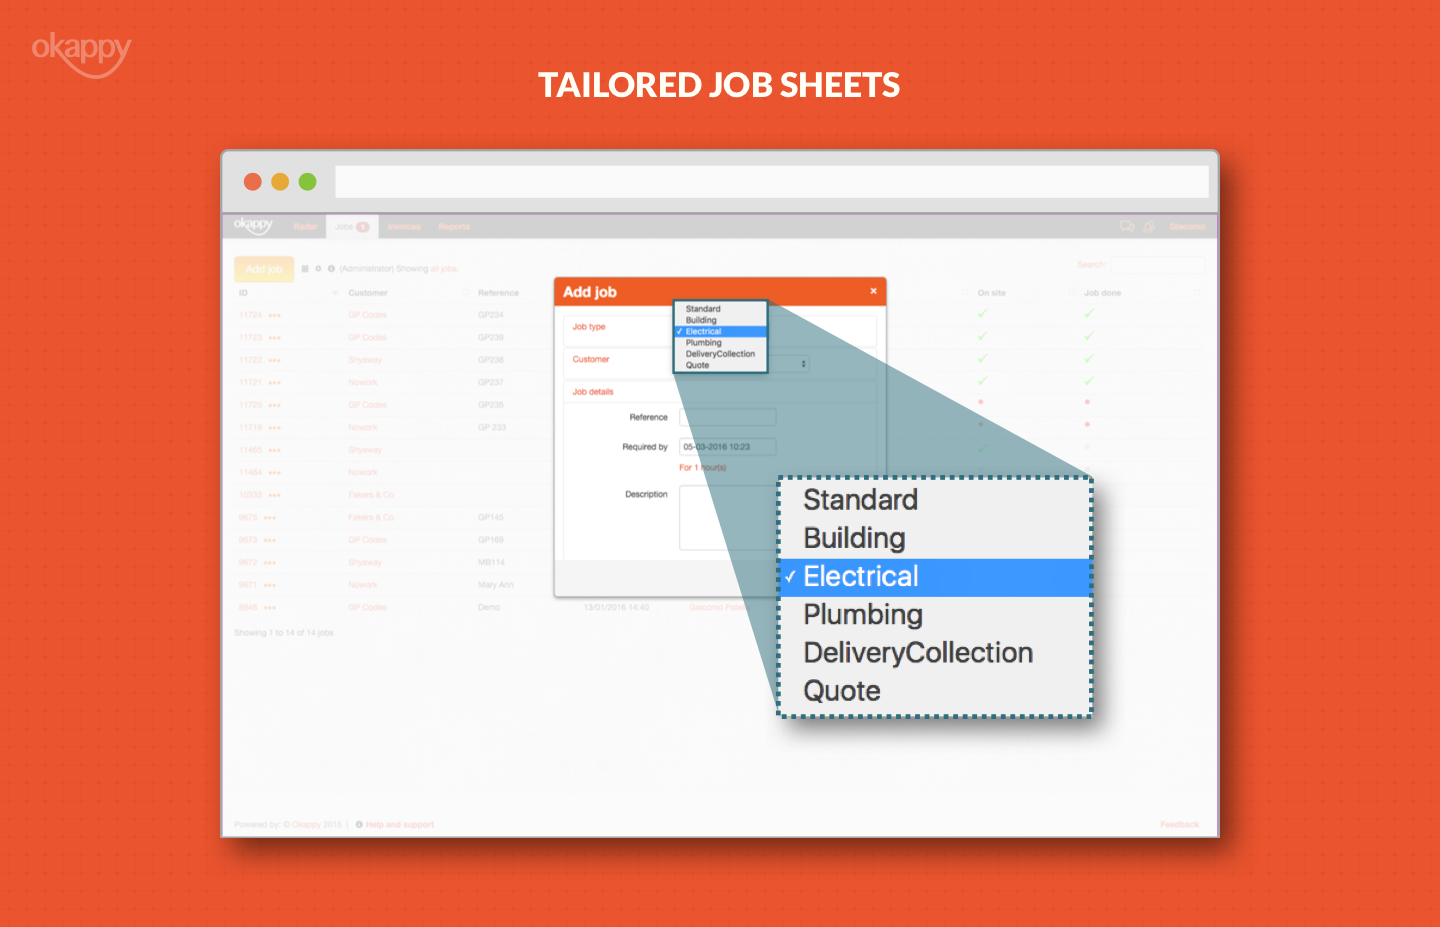 desktop view of tailored job sheets